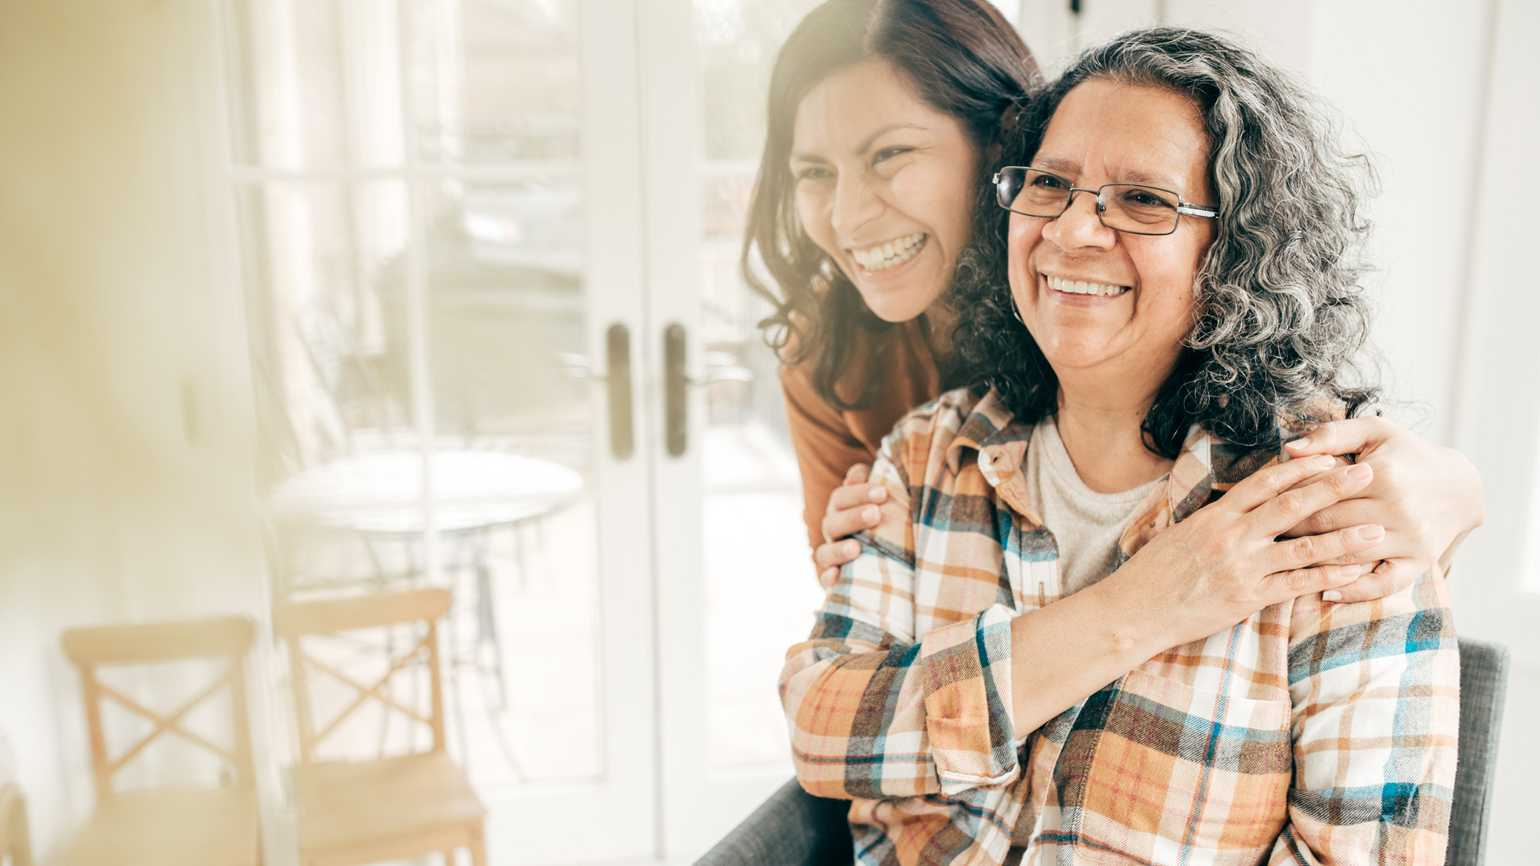 A adult daughter with her aging mother in a happy, loving embrace.